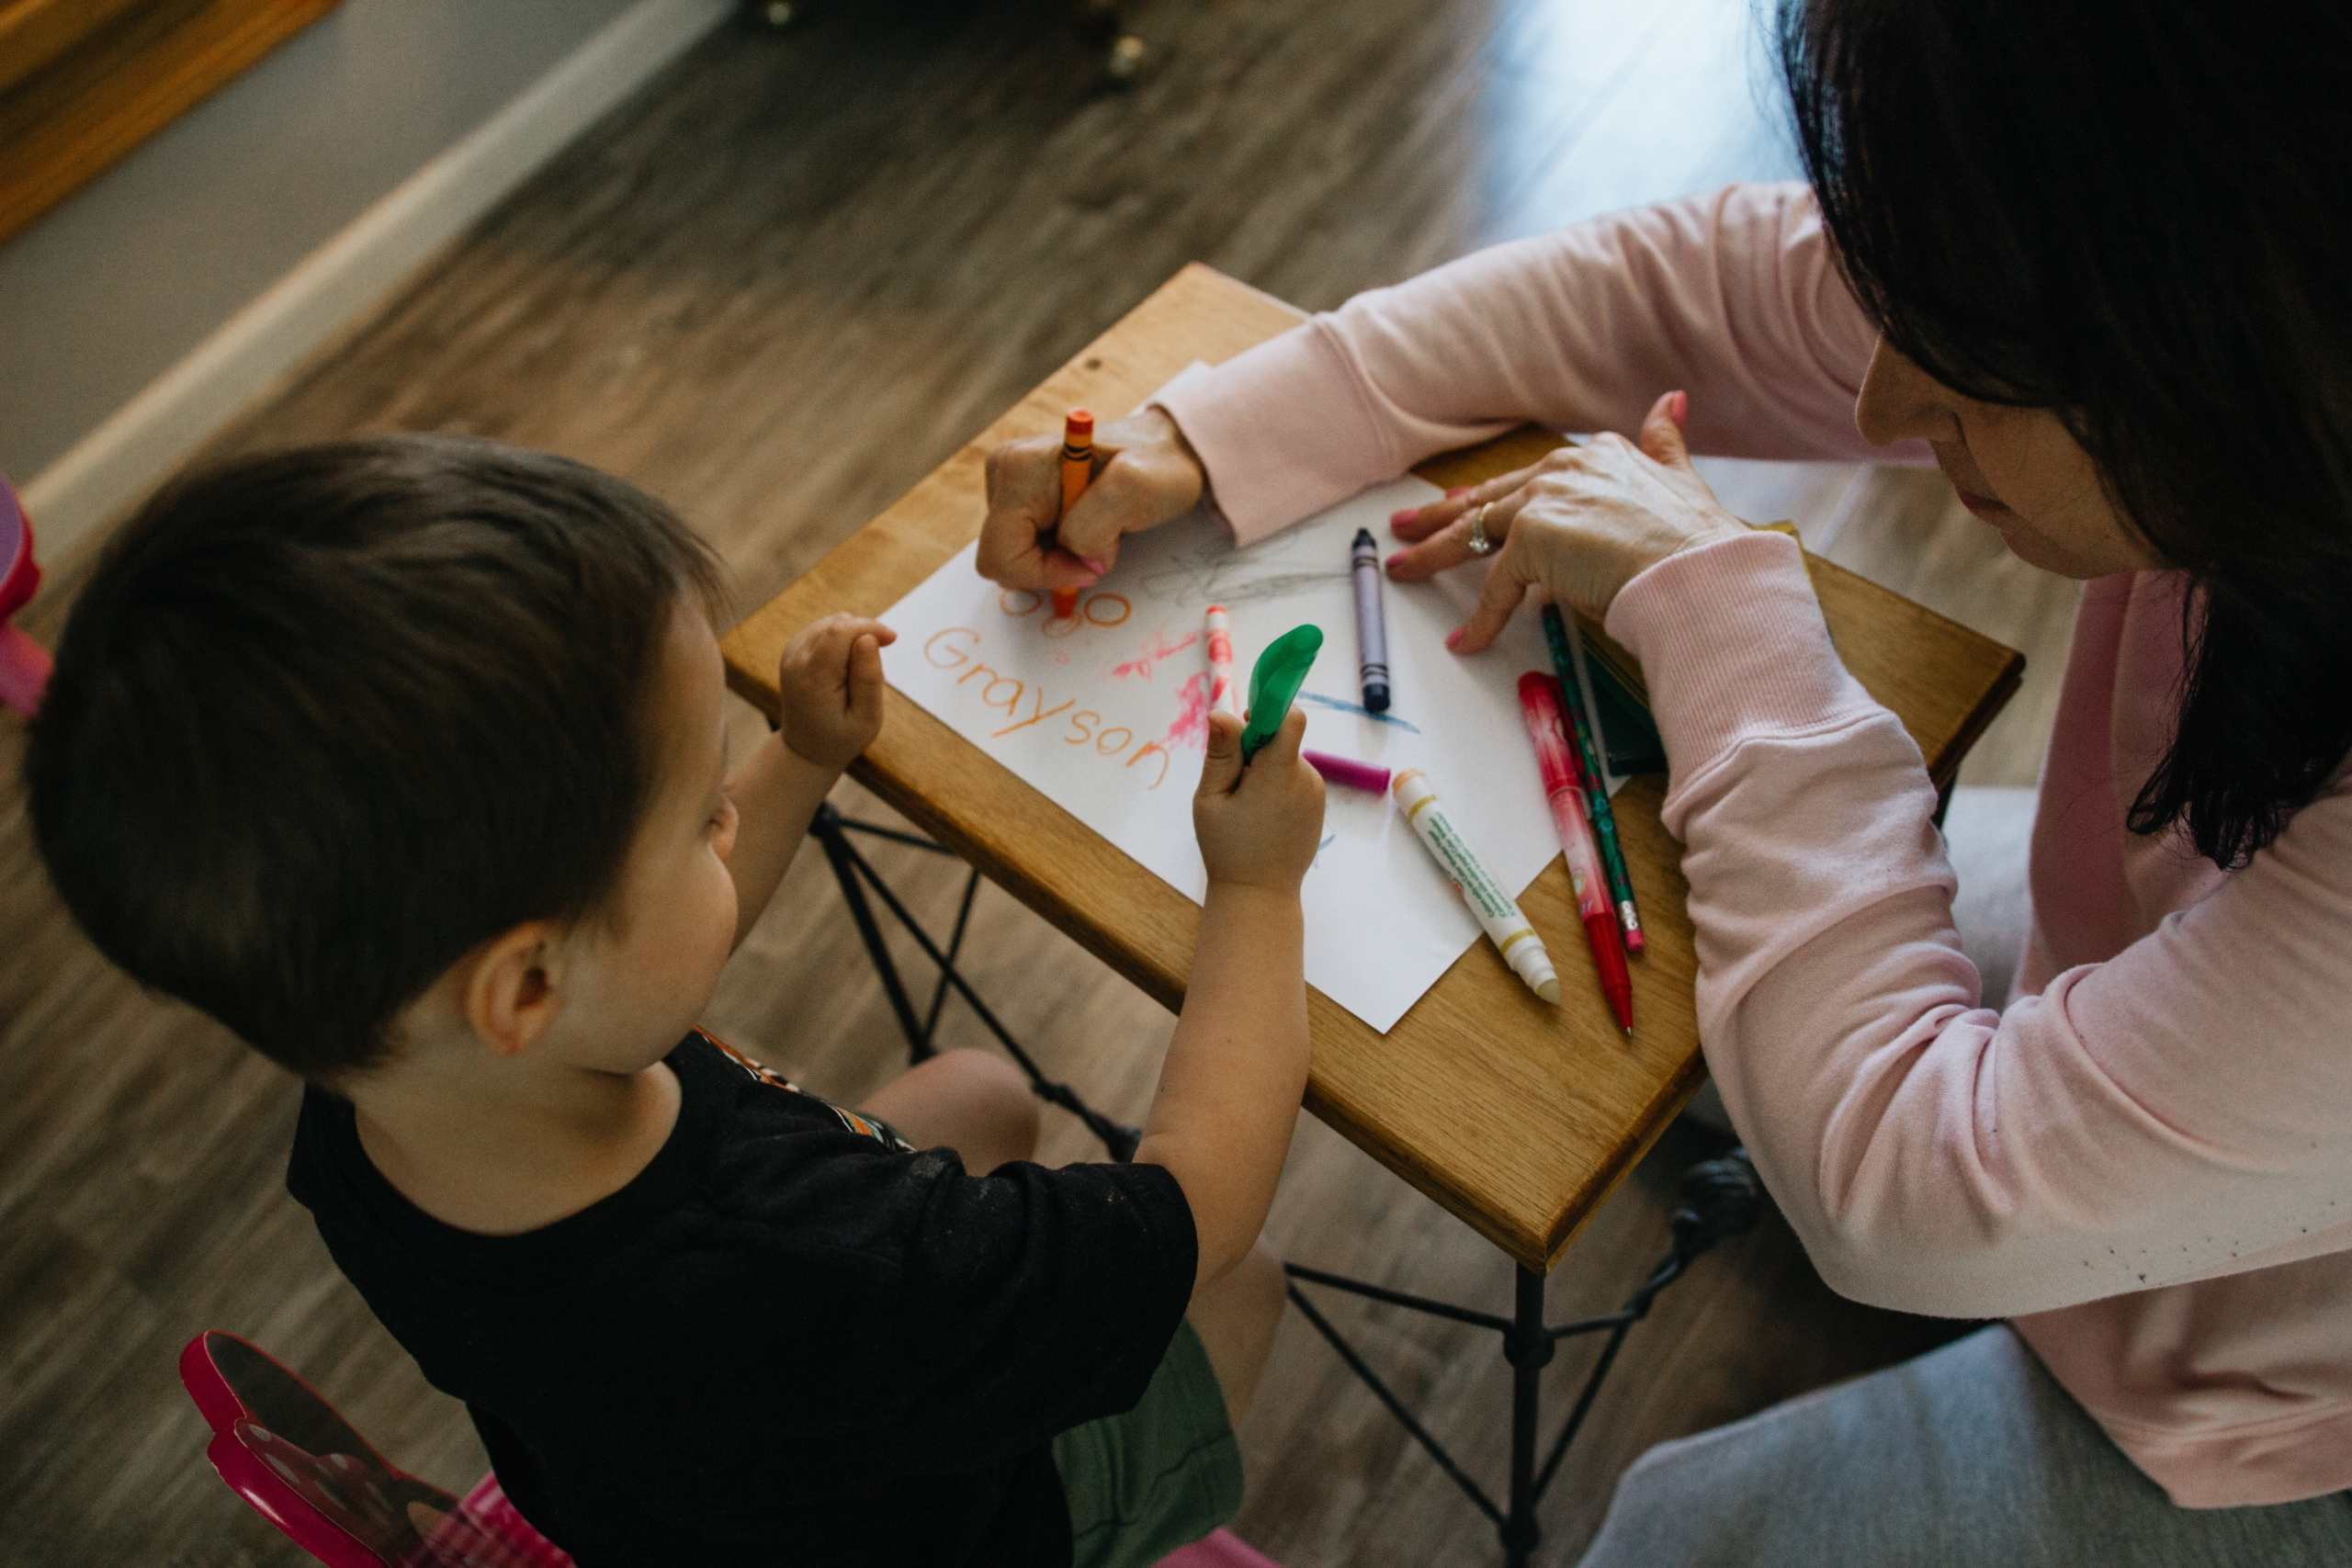 Child care provider helping a student, using her CDA certification in Missouri